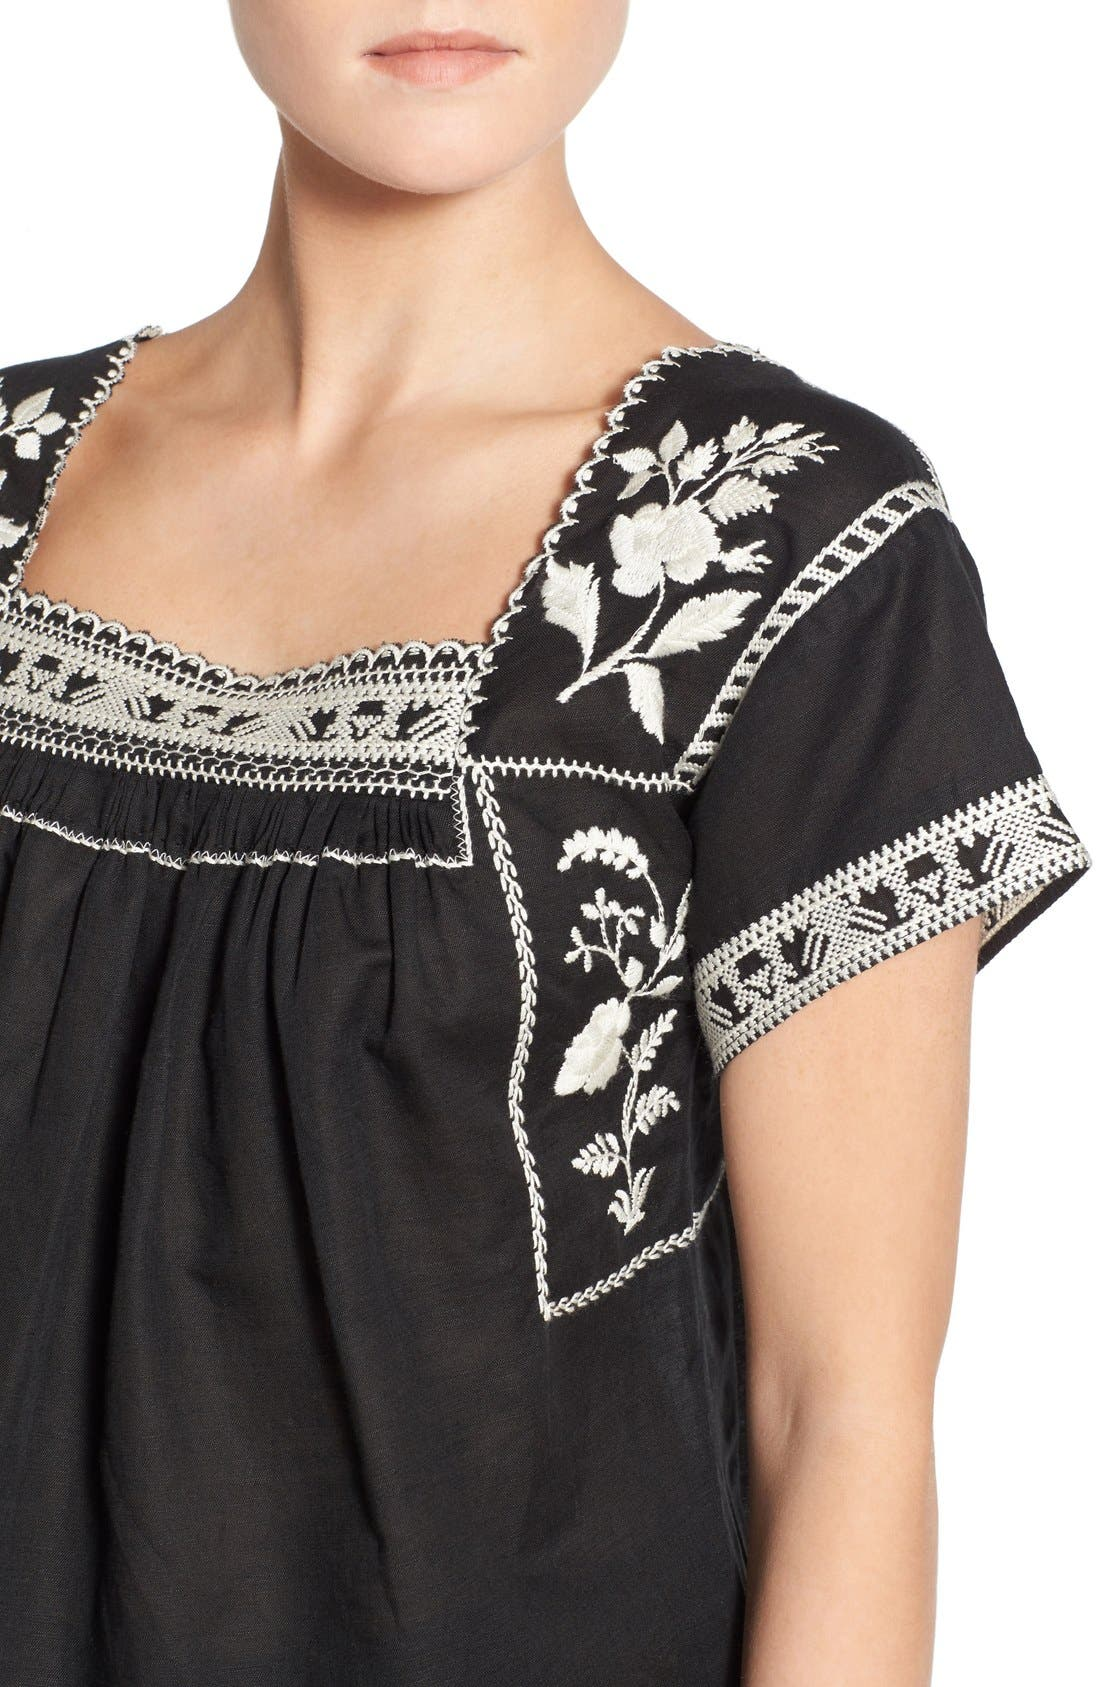 Wildfield Embroidered Top,                             Alternate thumbnail 4, color,                             001